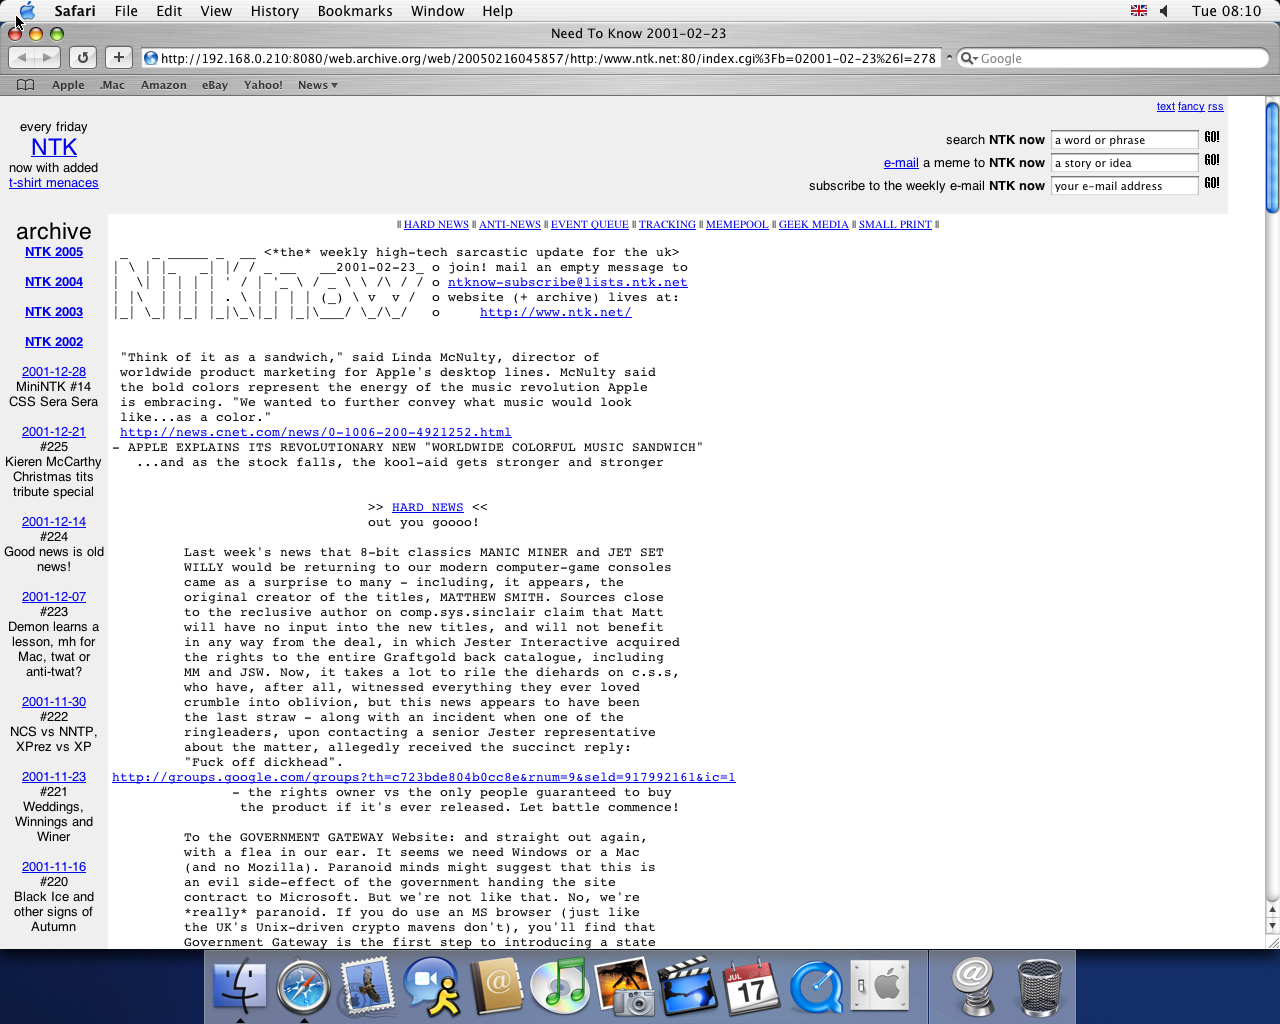 OS X 10.3 PPC with Safari 1.1 displaying a page from NTK archived at February 16, 2005 at 04:58:57